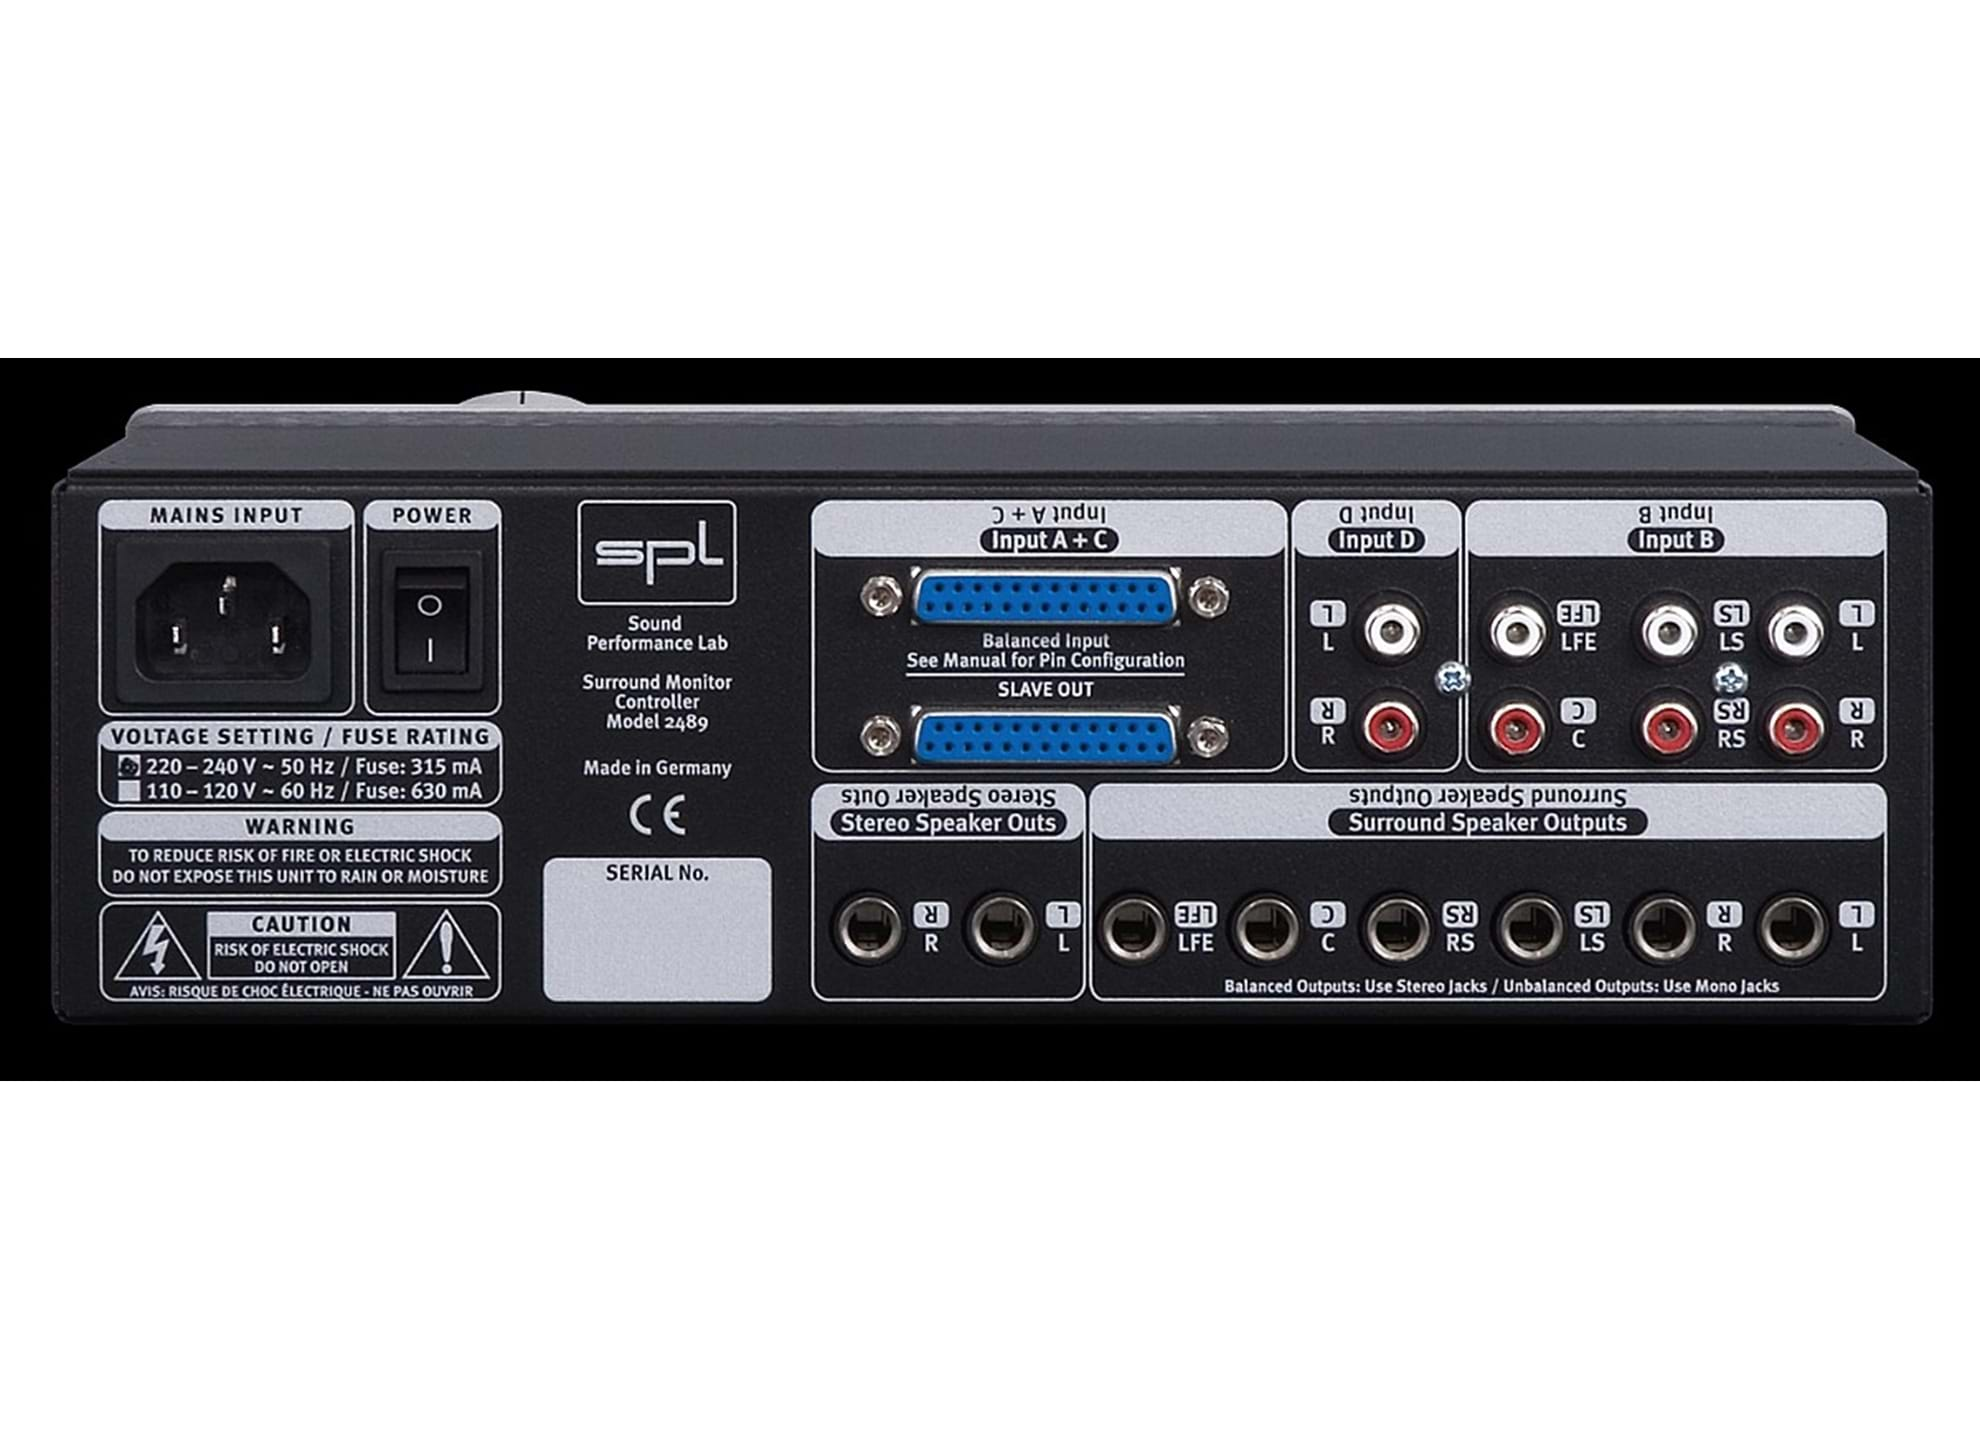 SMC 2489 - Surround Monitor Controller